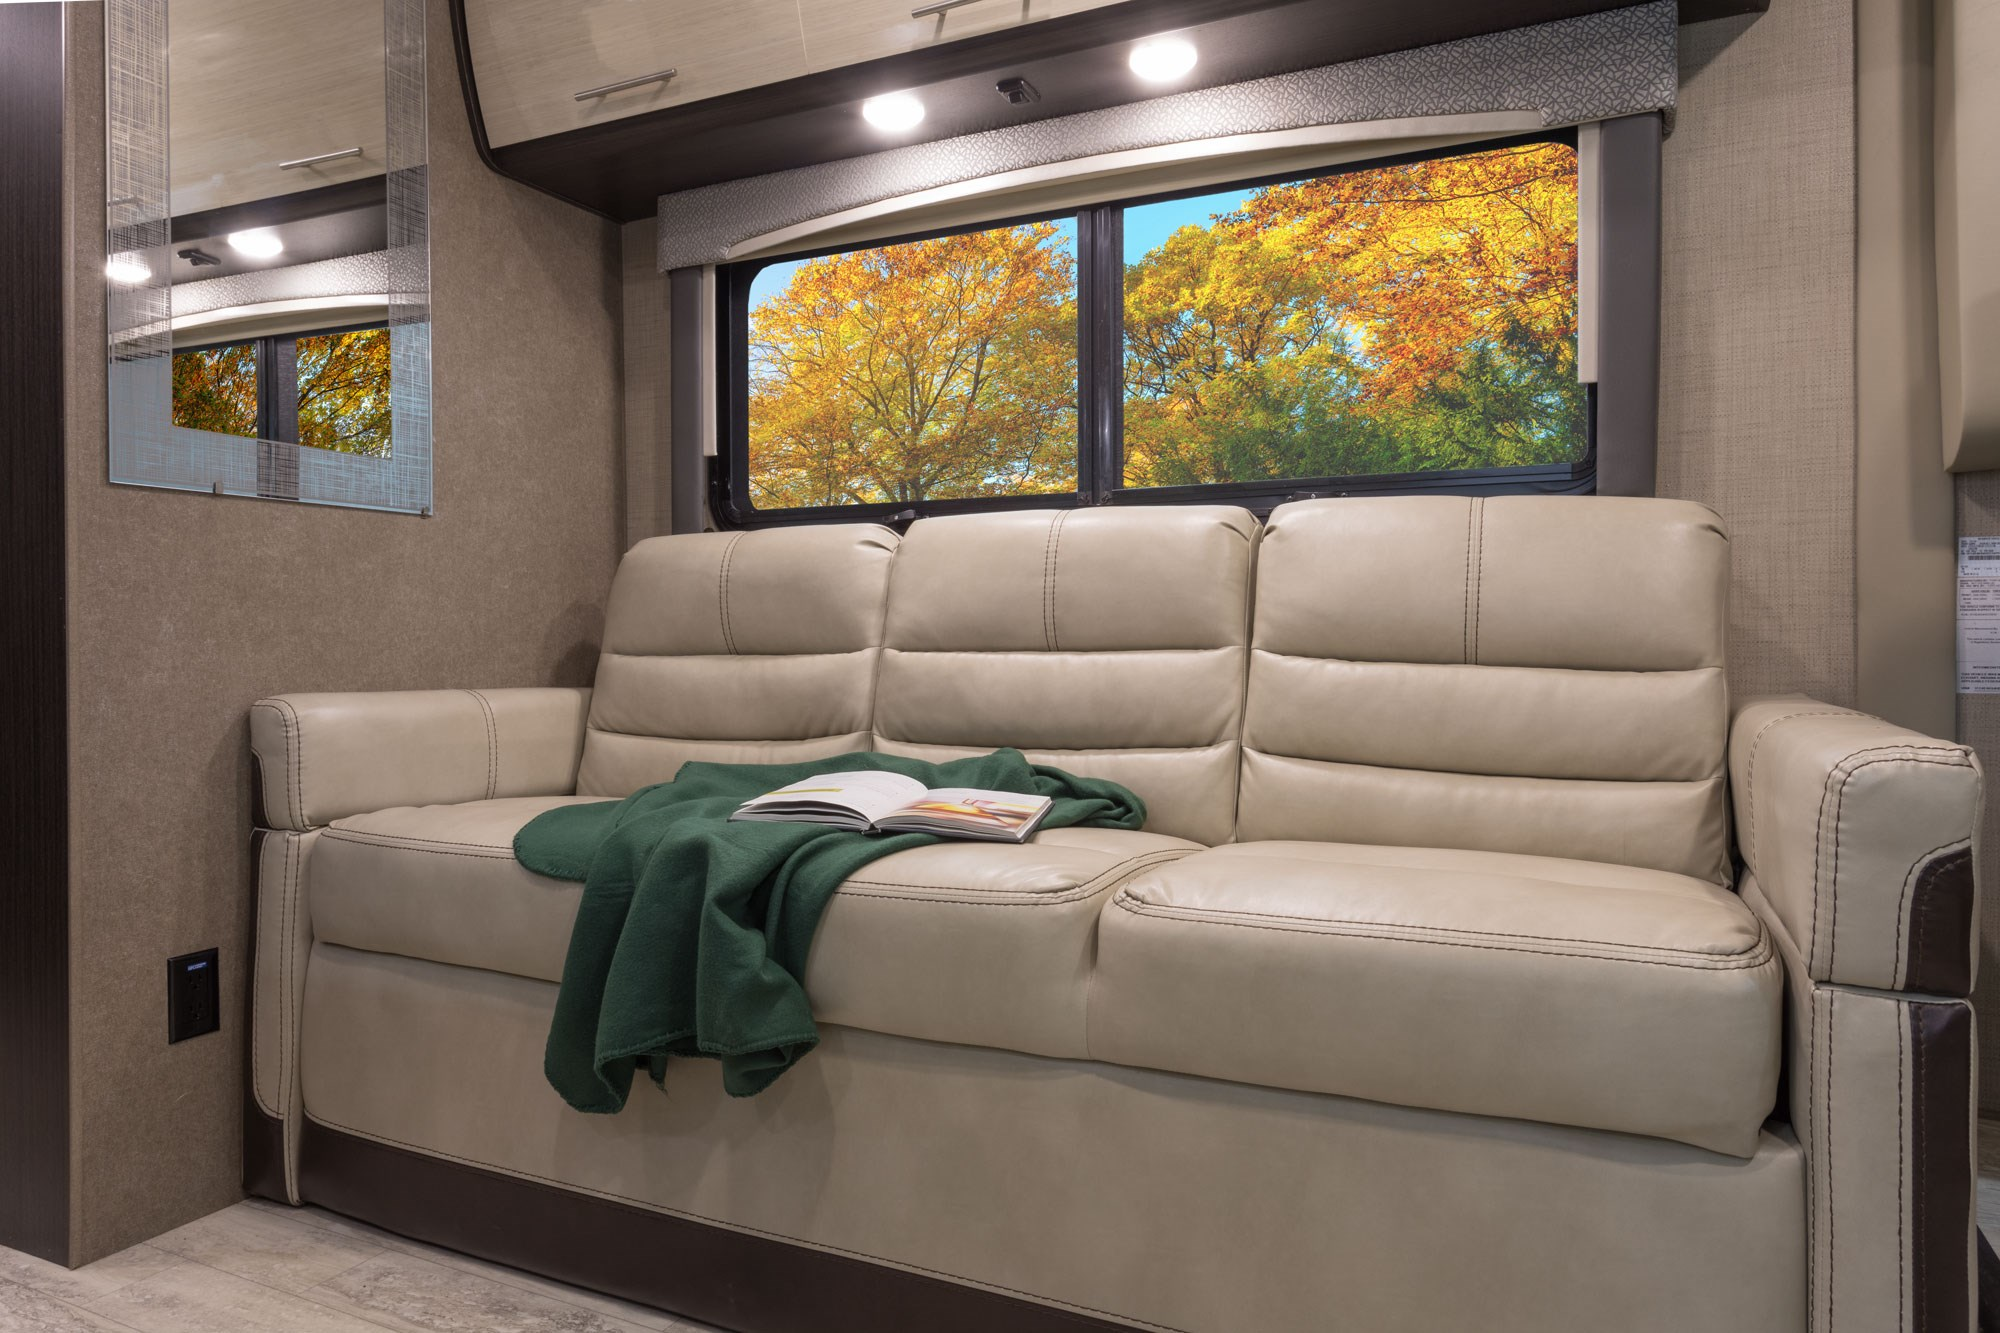 jackknife sofa with seat belts folding table under thor vegas class a upgraded full size rv b andb